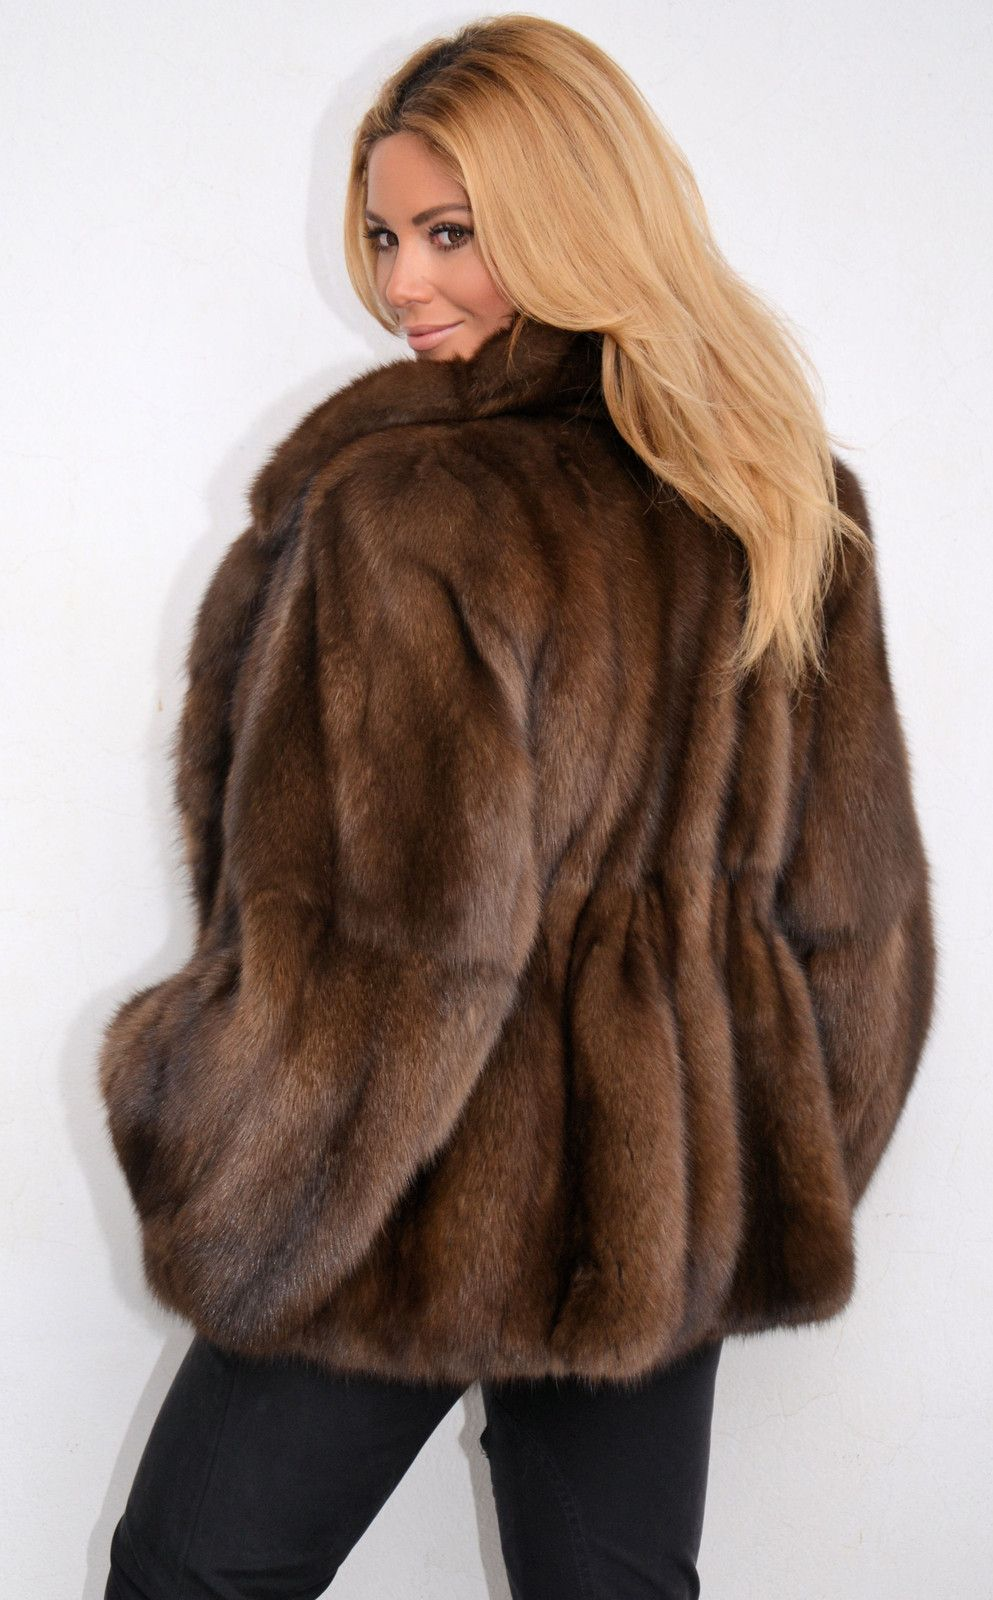 Outlet Russian Sable Jacket Fur Zobel Zobelmantel Pelz More Then ...